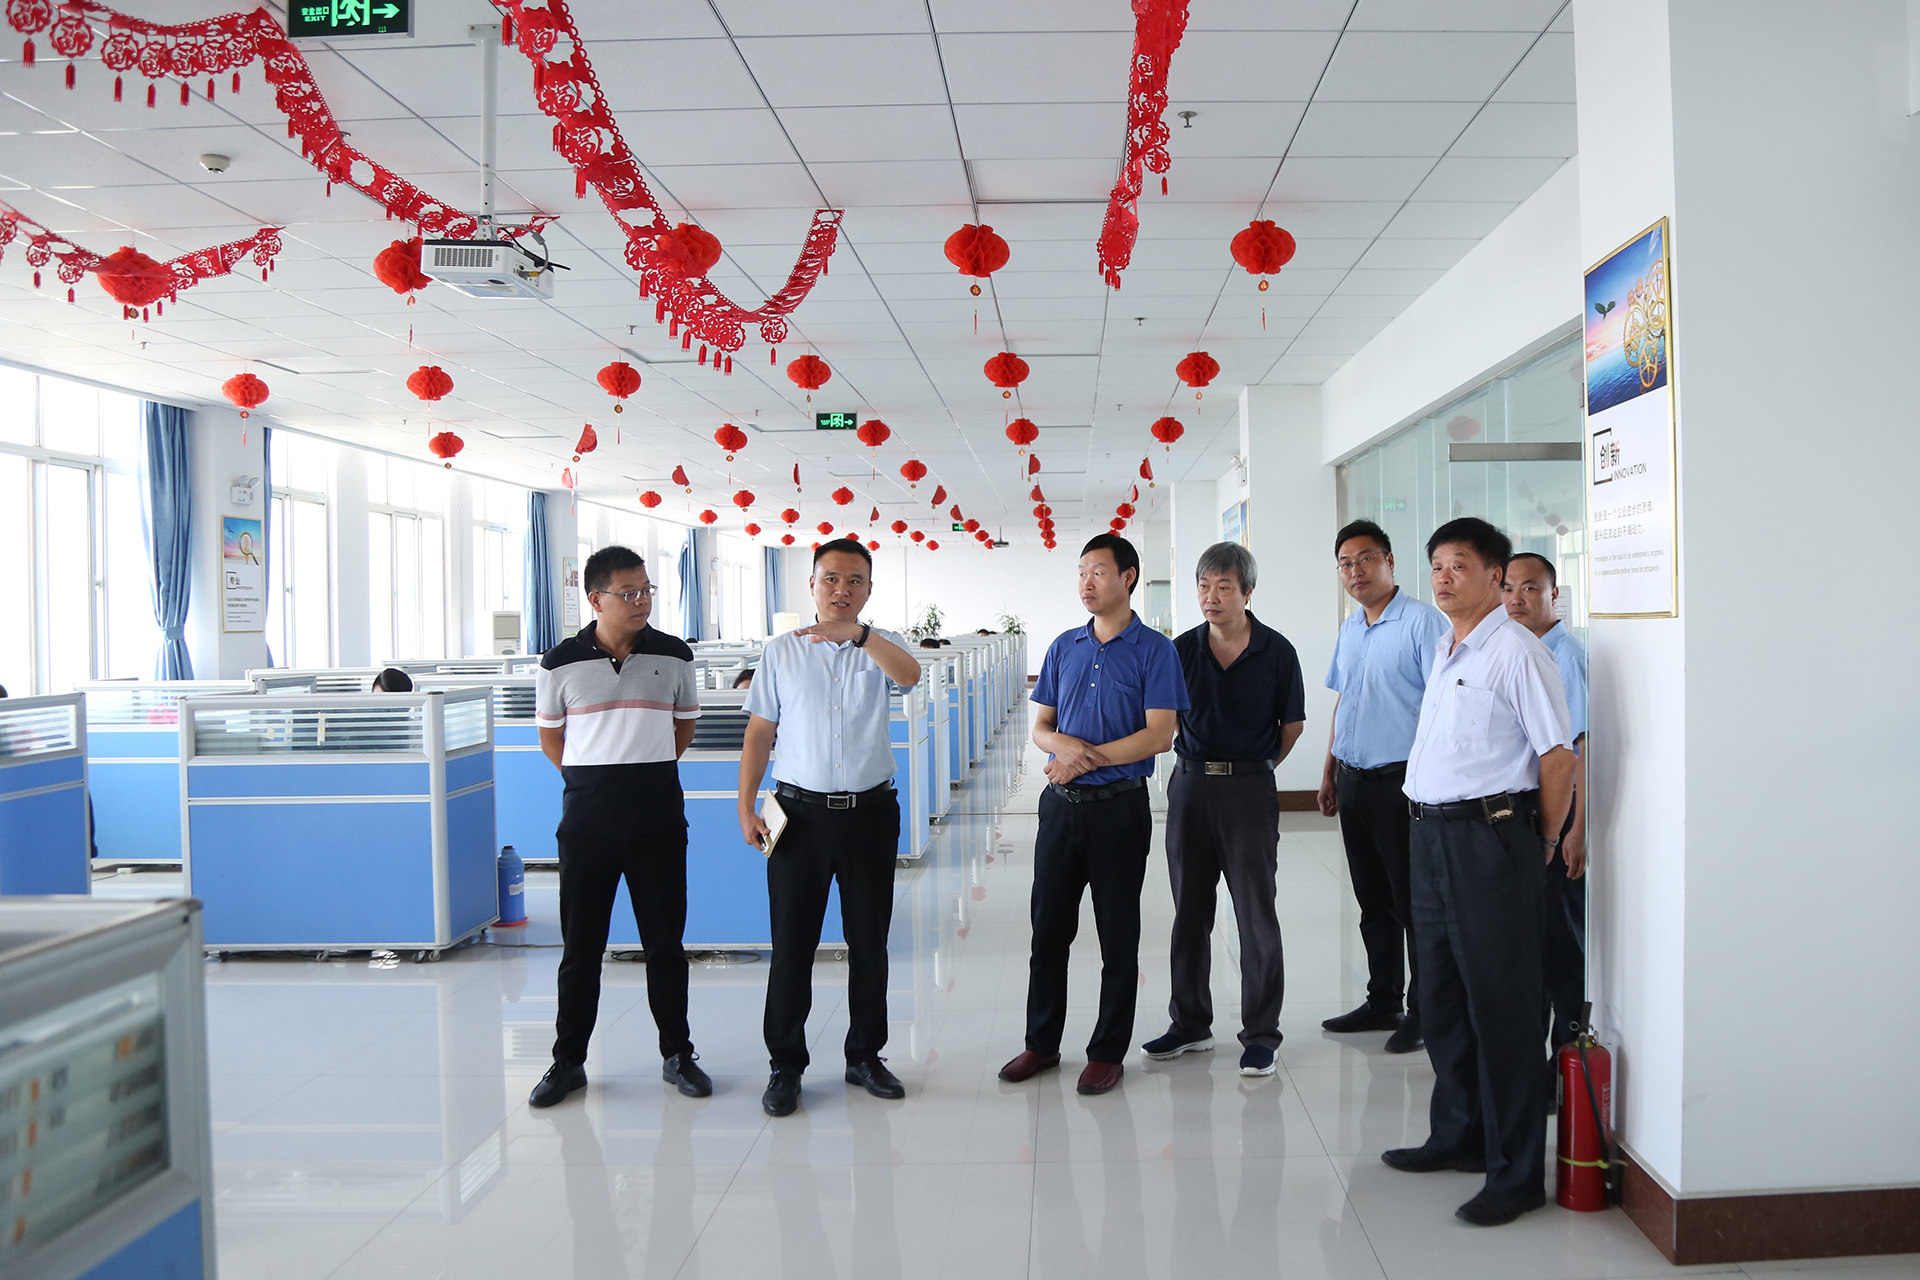 Warm Welcome National Safety Standard Inspection Center Expert Group Visit China Coal Group Site Review